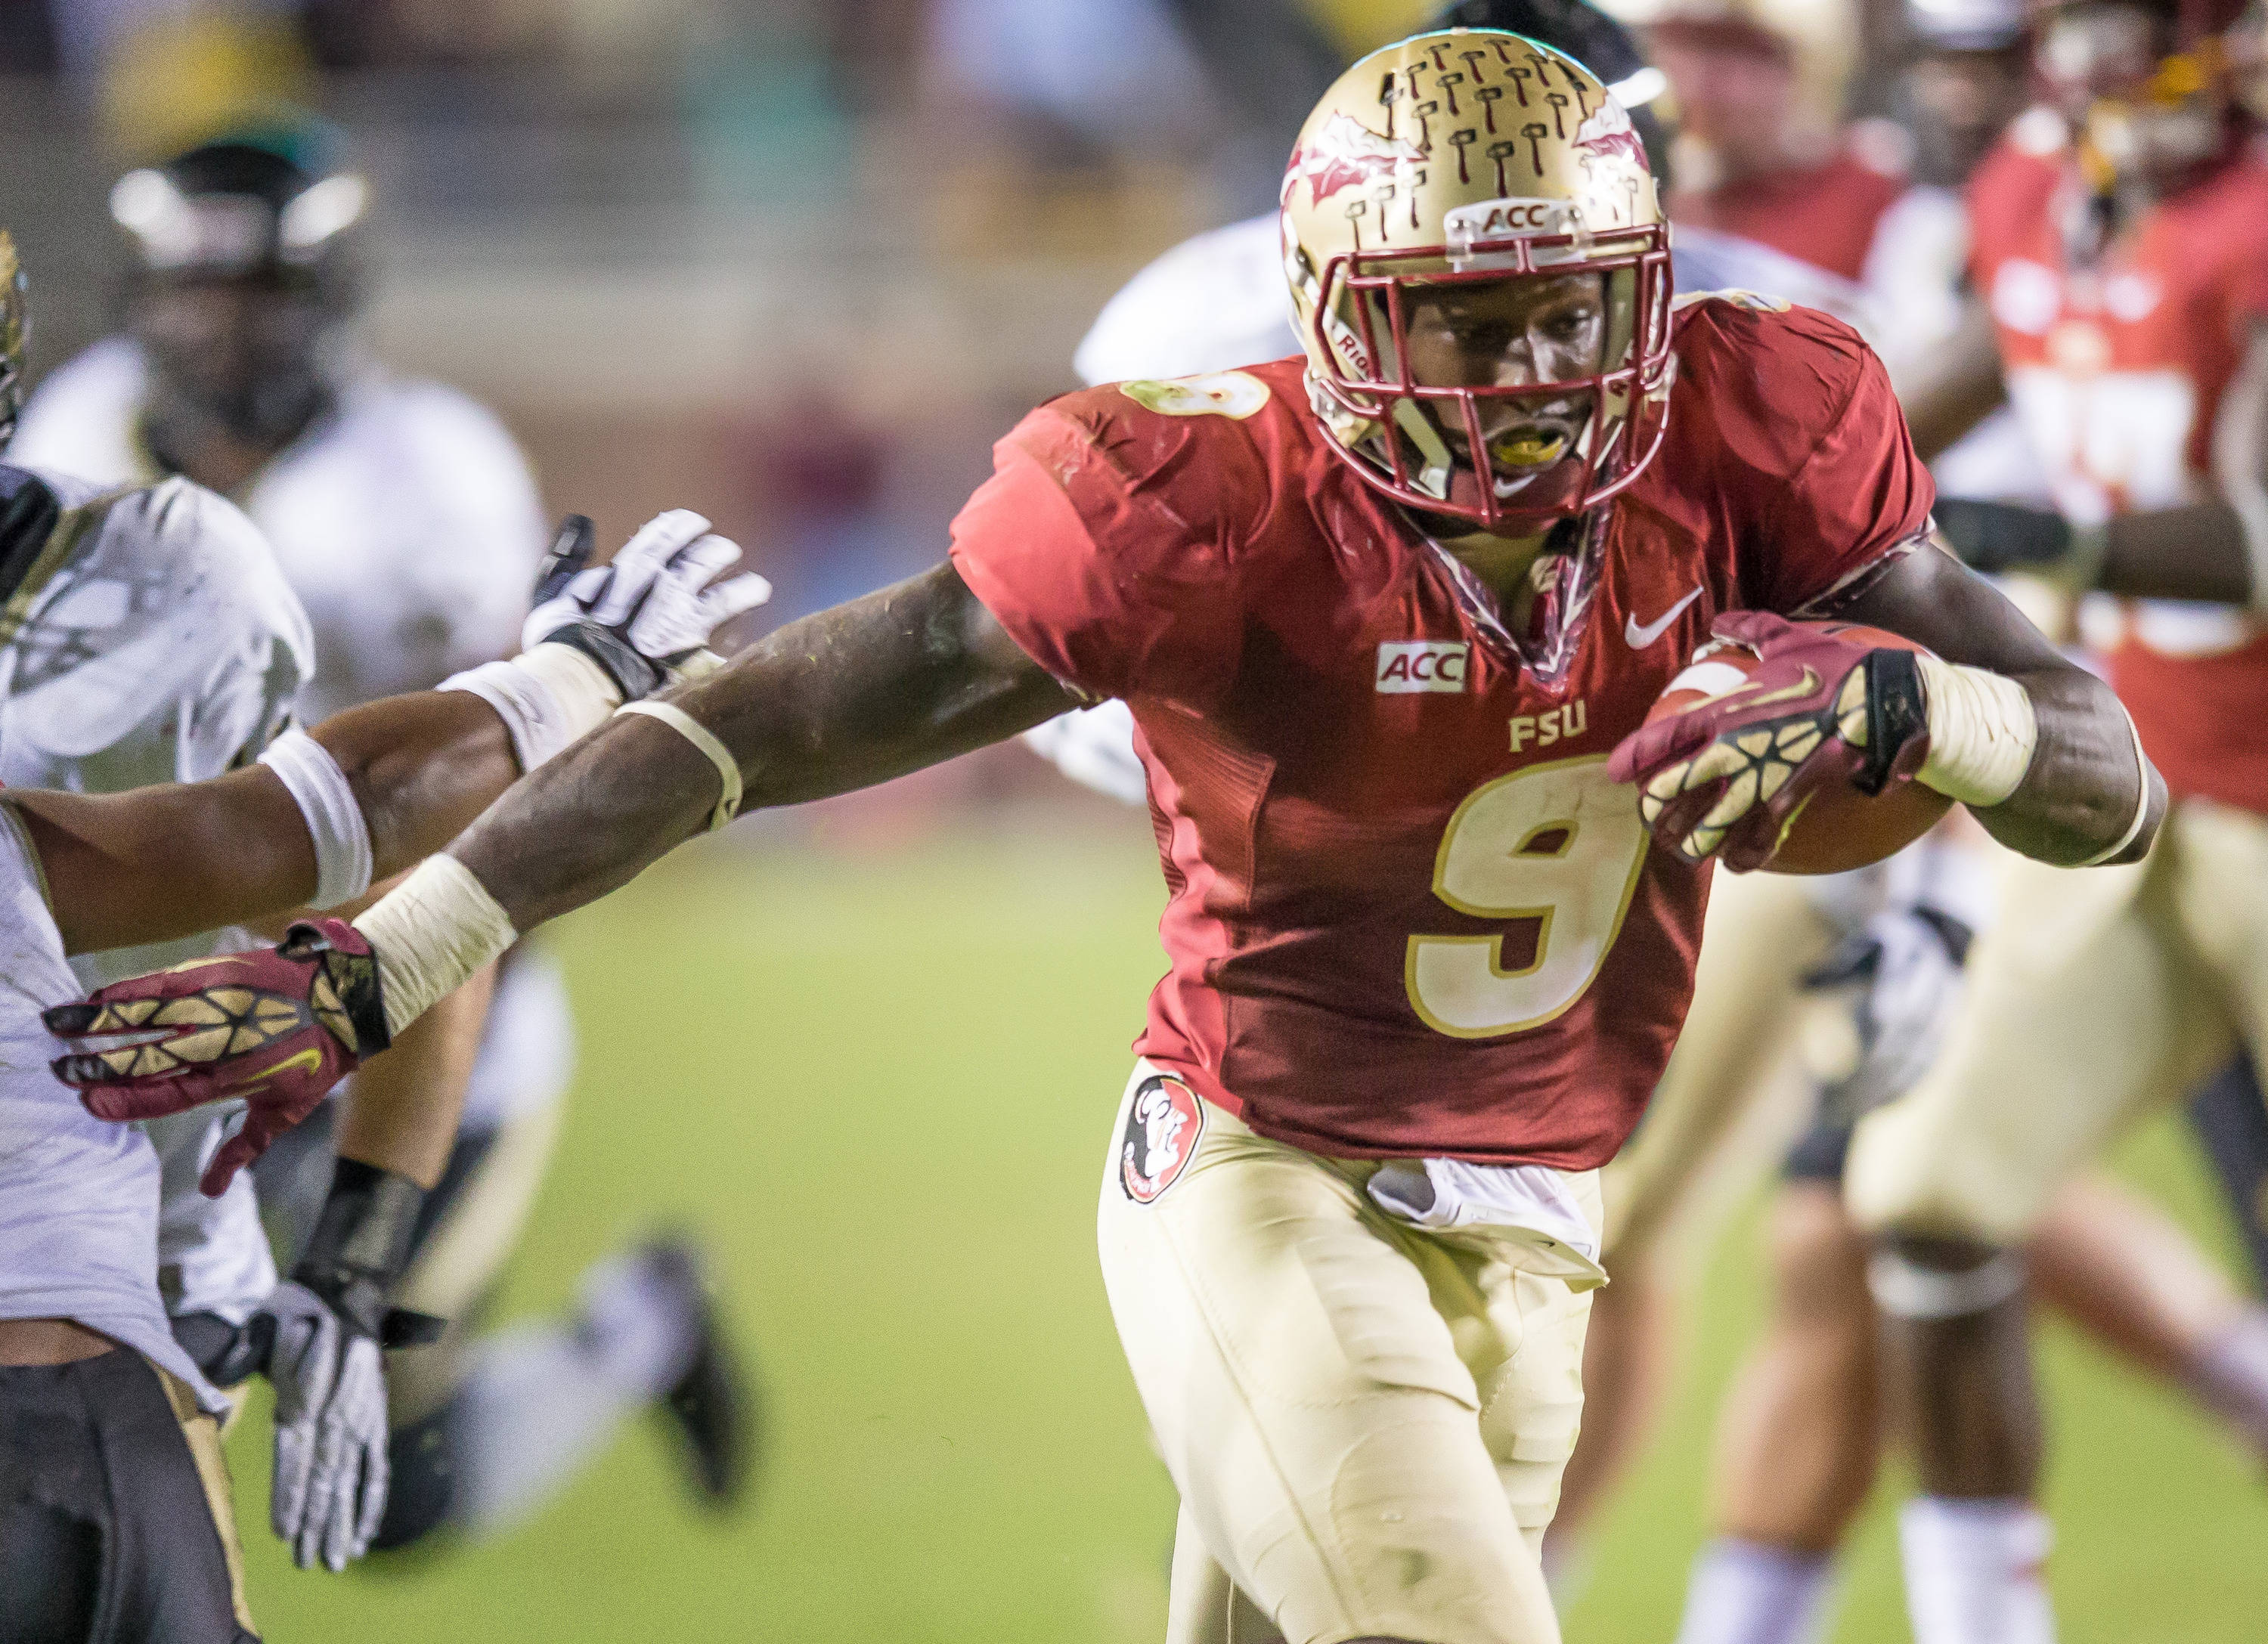 Karlos Williams (9) scored twice and rushed for 115 yards.